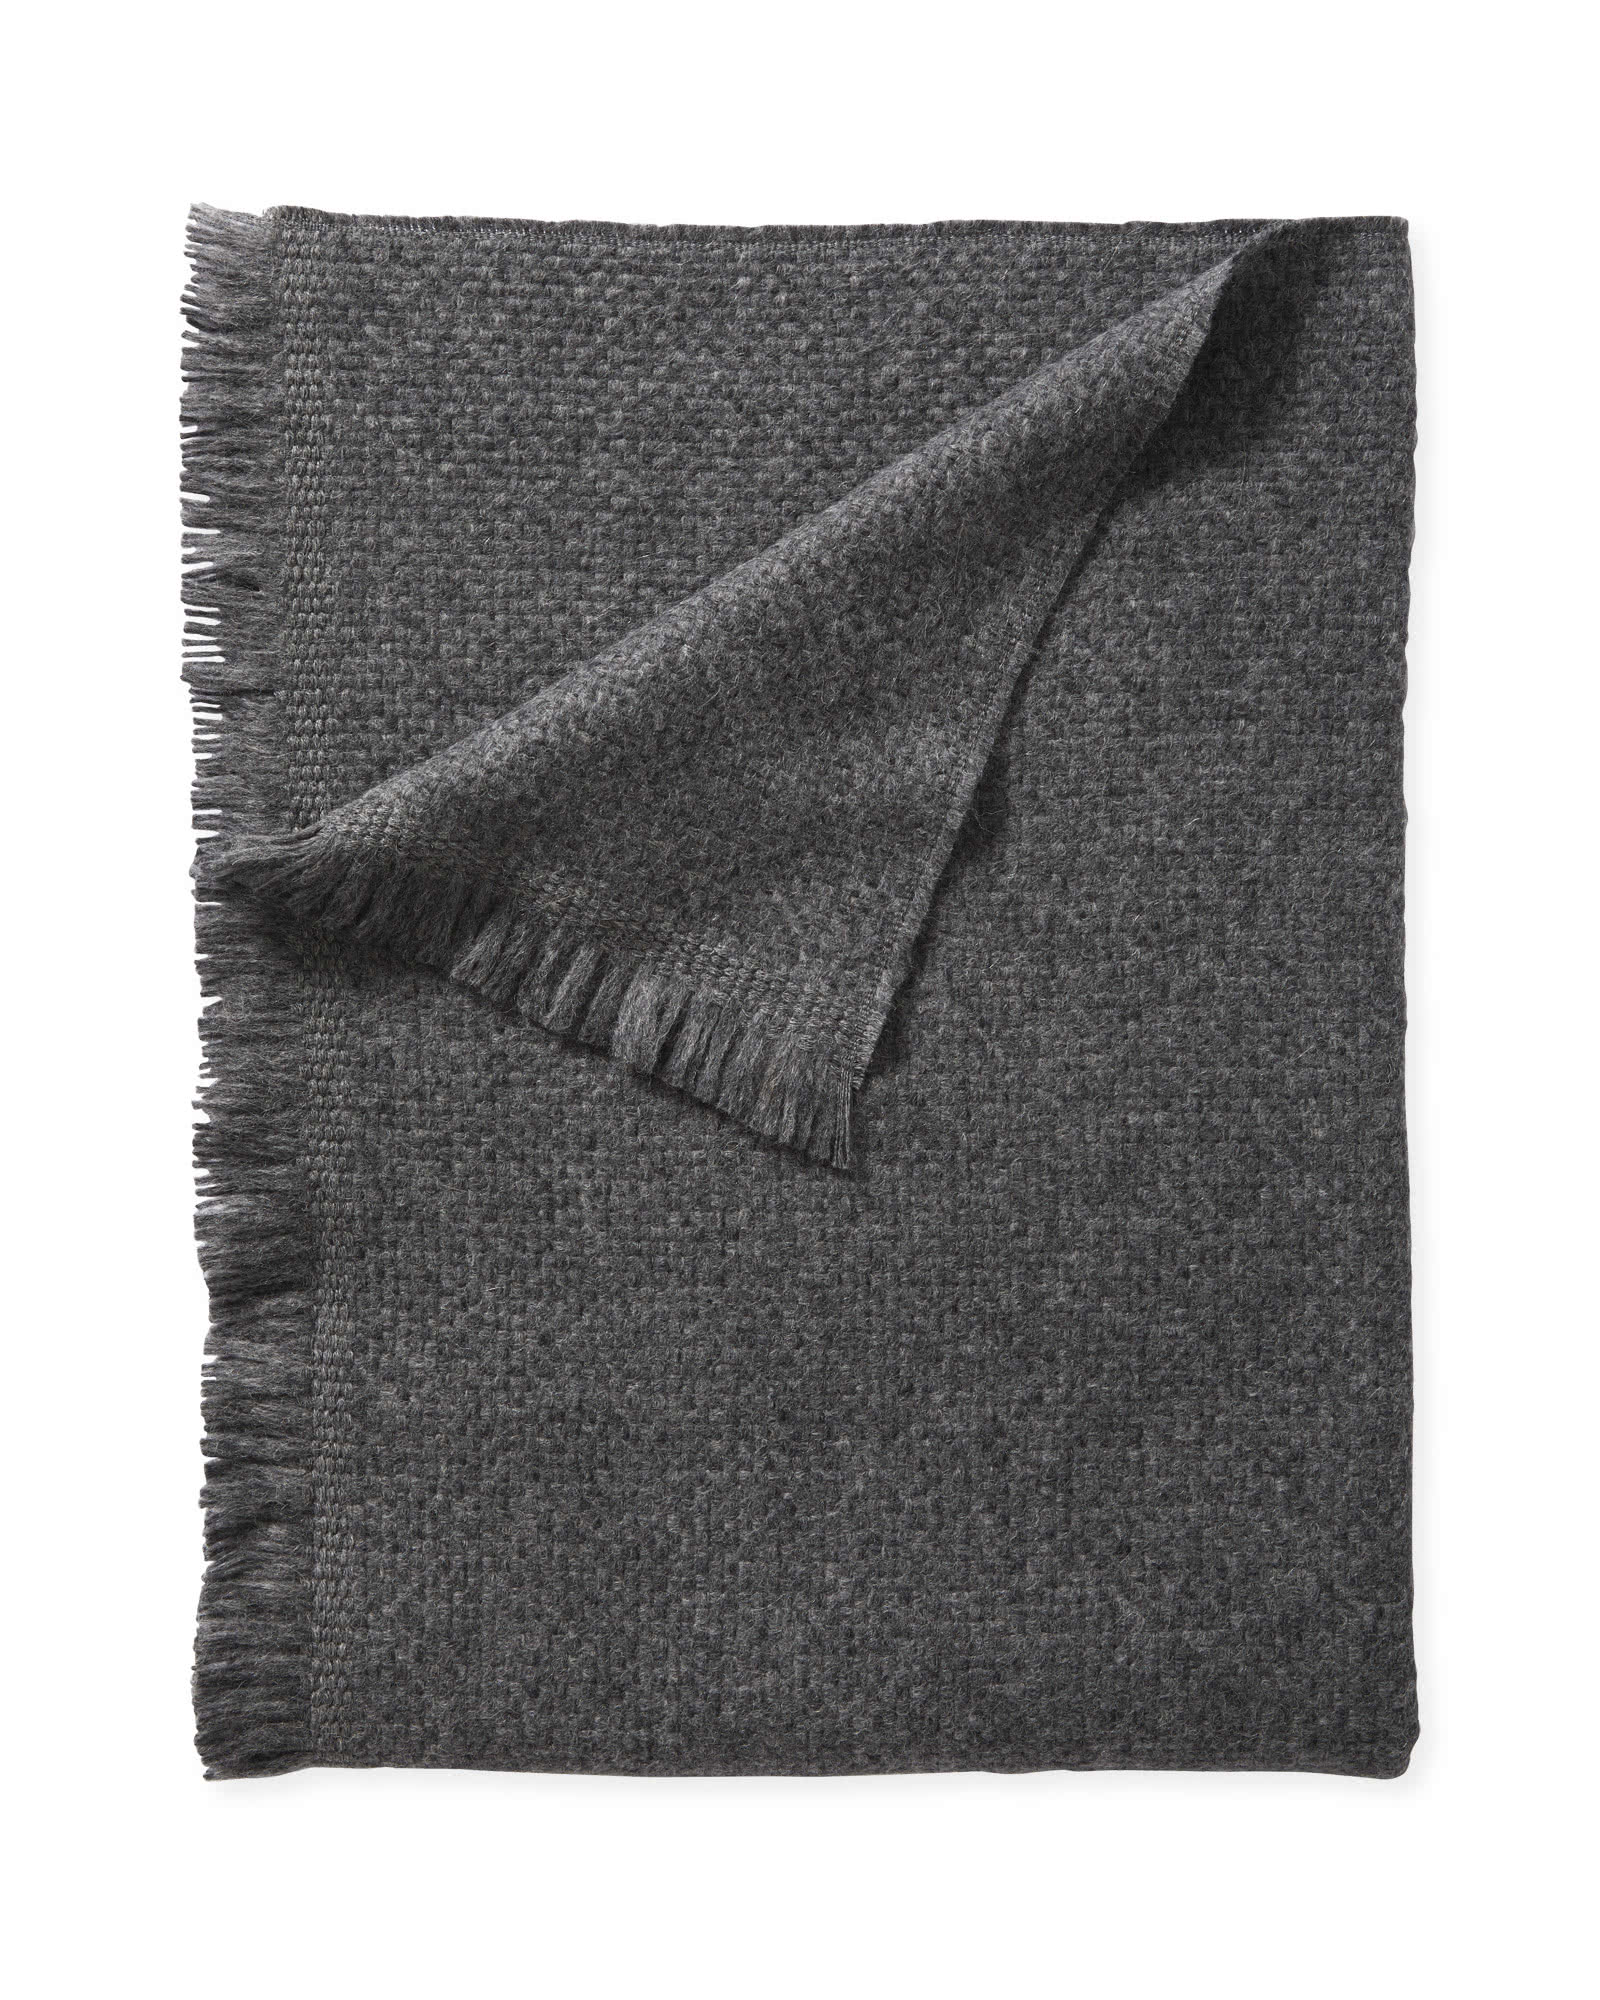 Milo Alpaca Throw - Charcoal, Charcoal